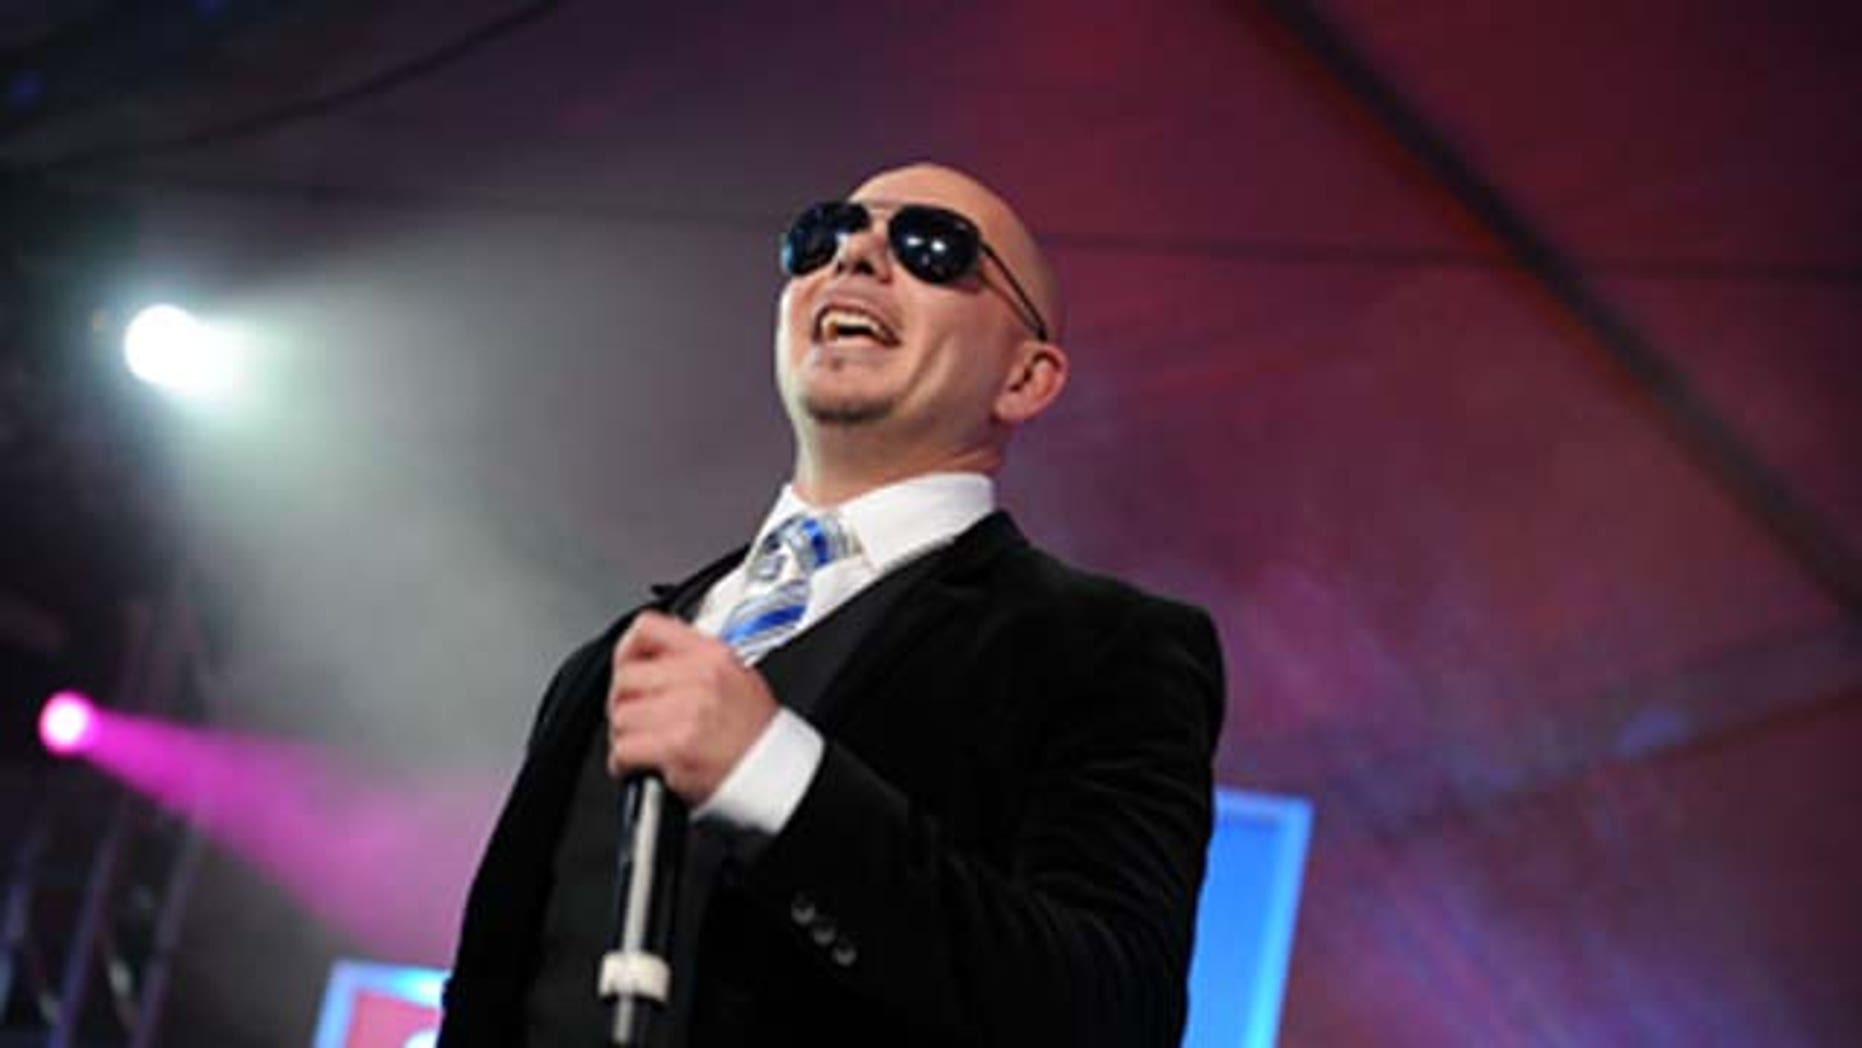 Feb. 5, 2011: Rapper Pitbull performs during the Bud Light Hotel event in Dallas, Texas.